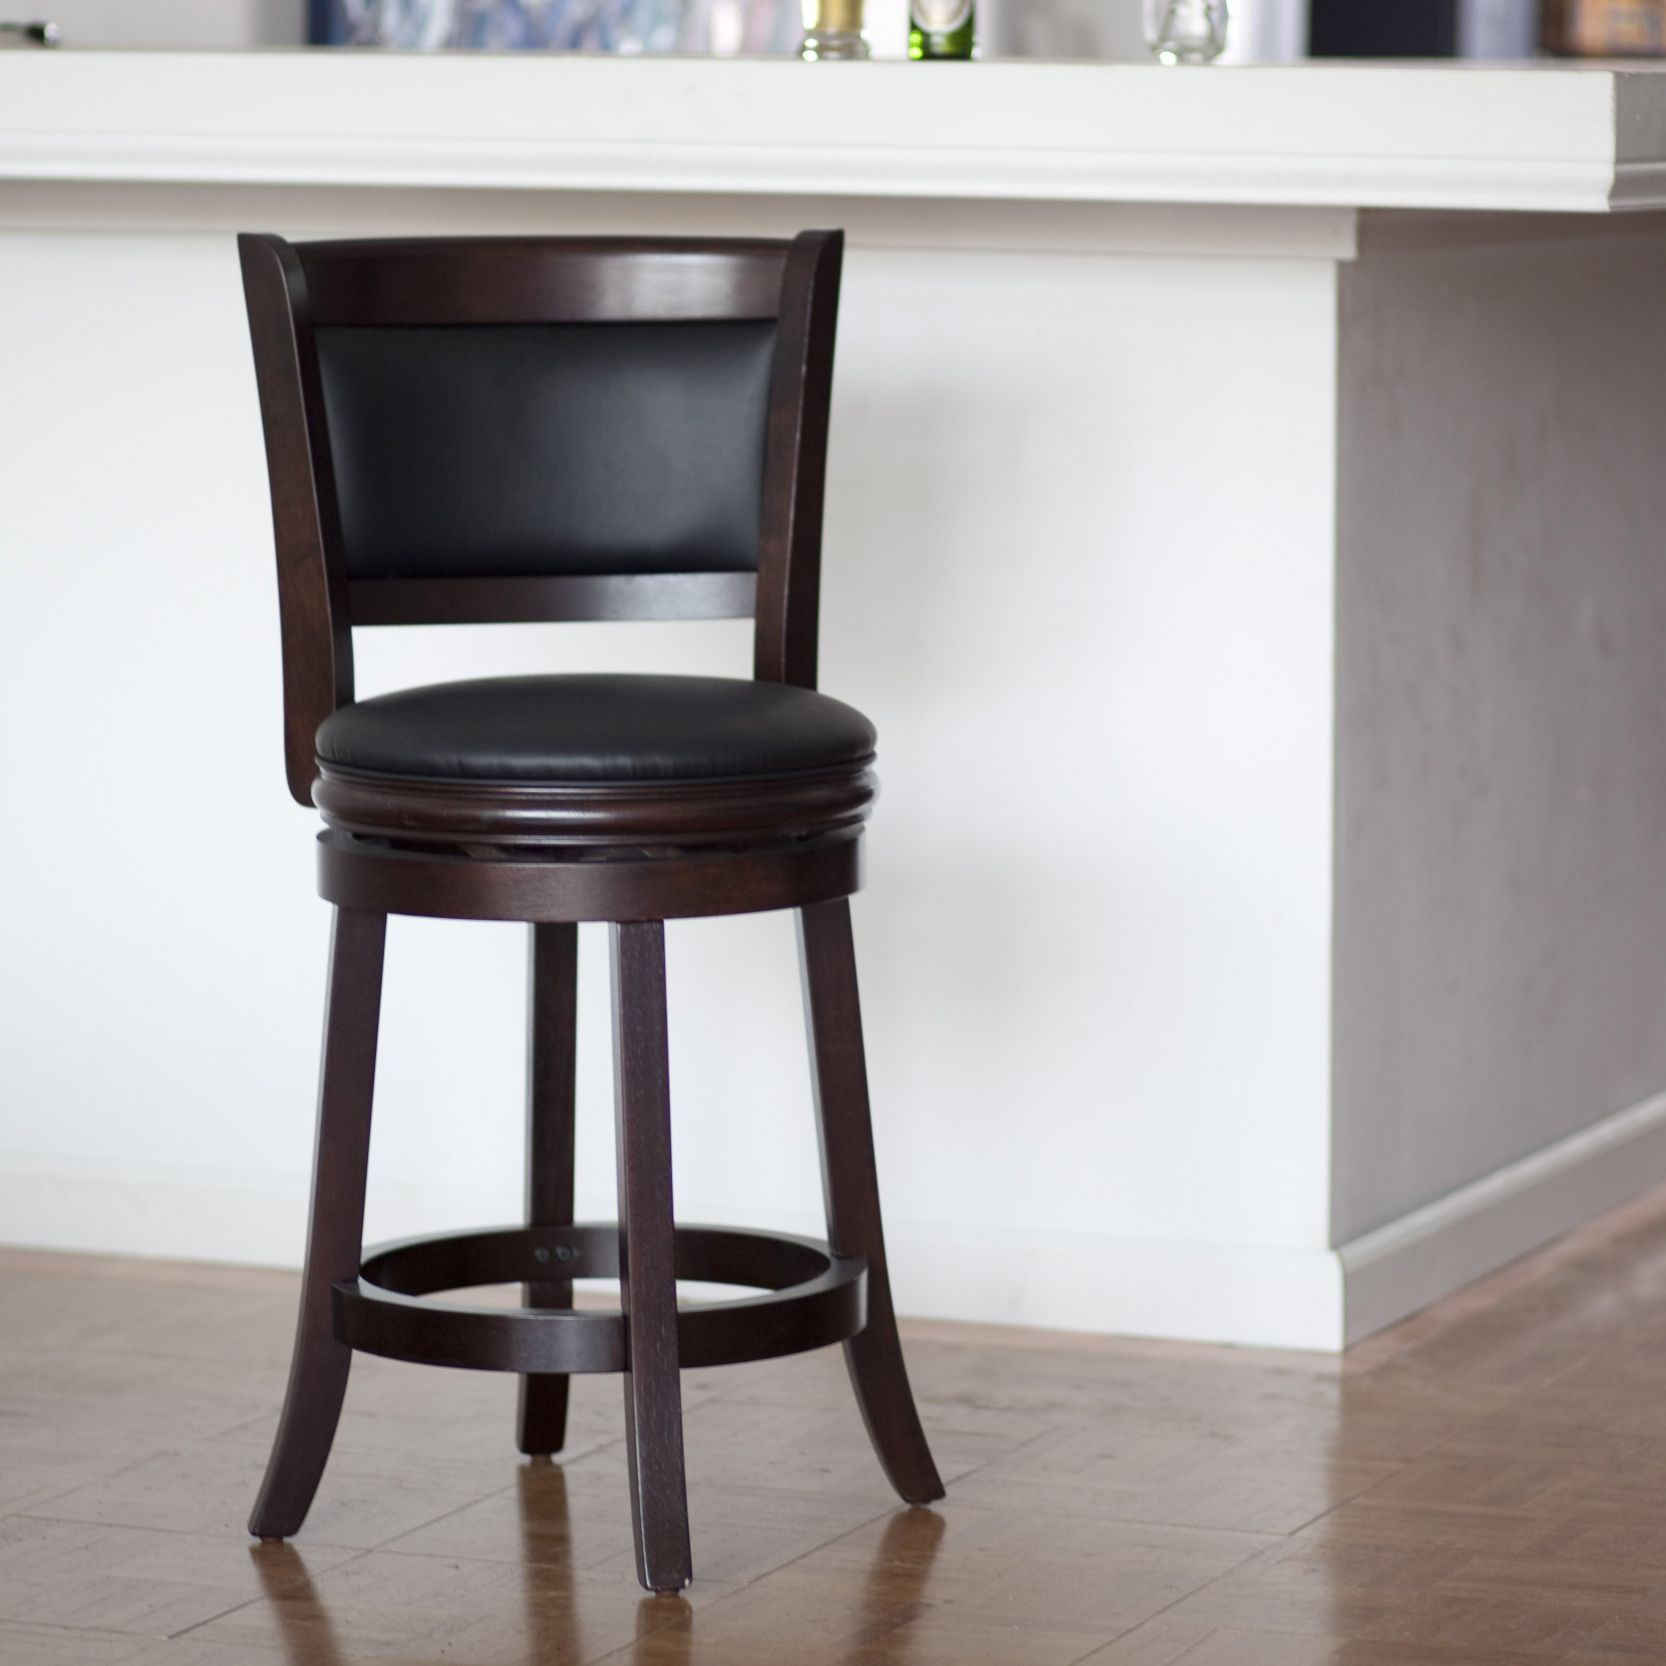 50 24 swivel bar stools modern classic furniture check more at http